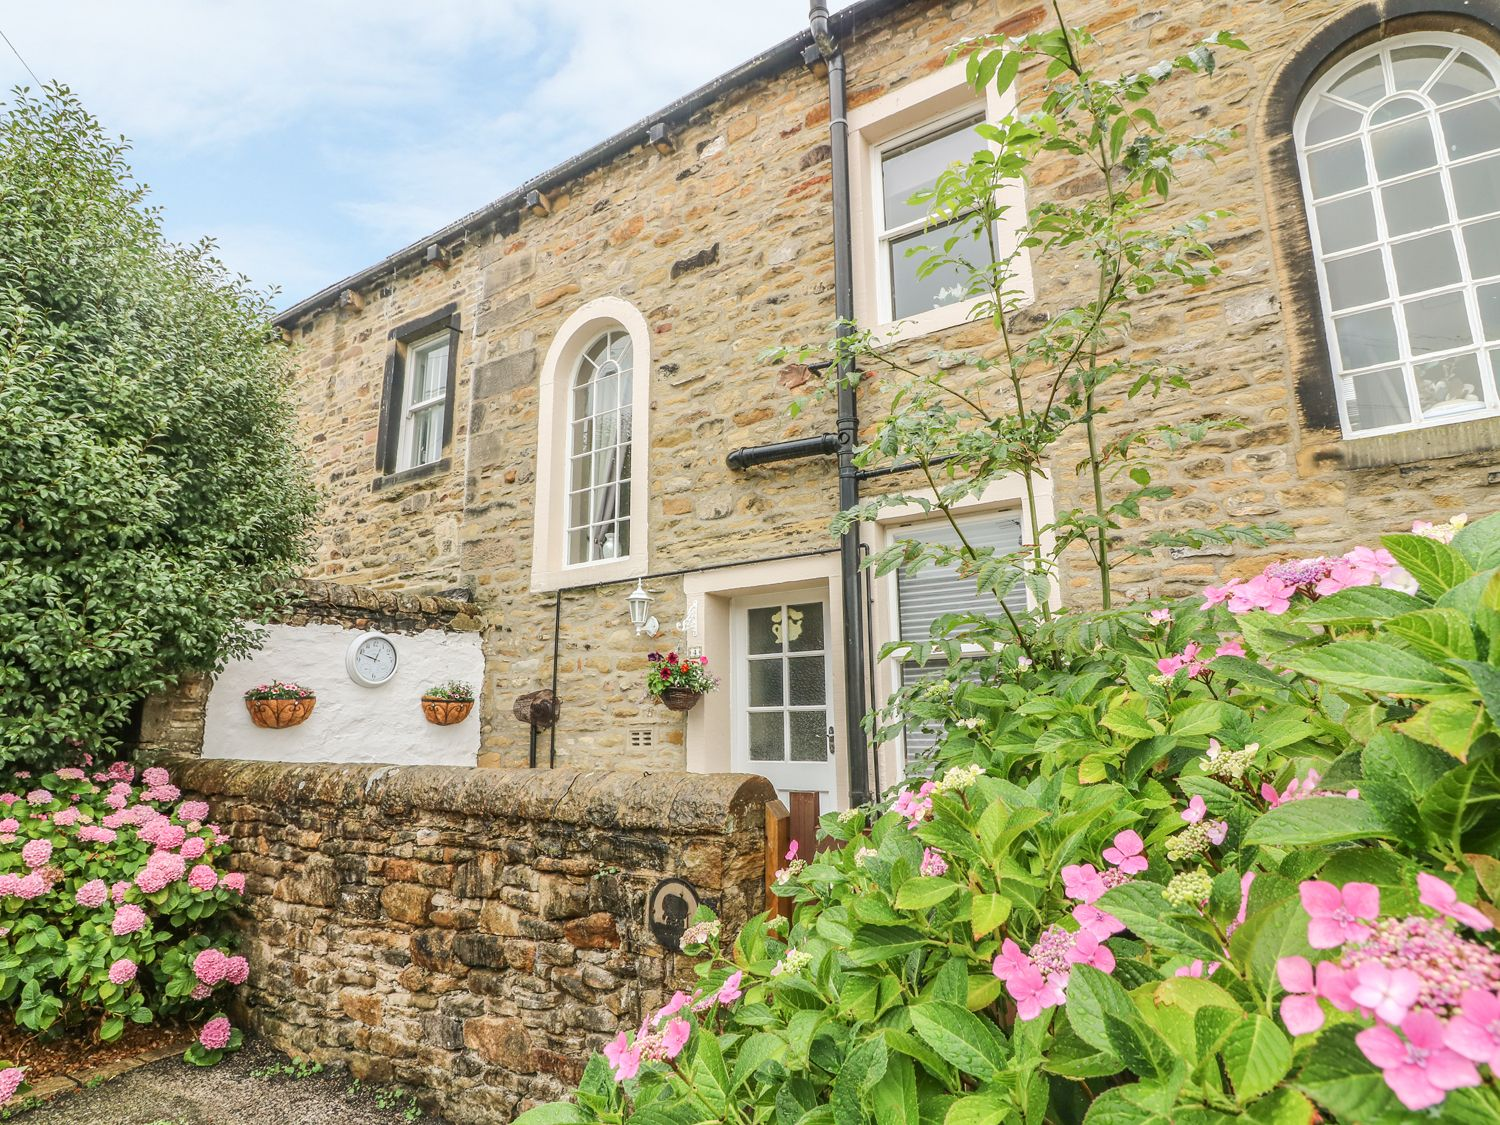 Daisy's Holiday Cottage in Skipton - sleeps 2 people